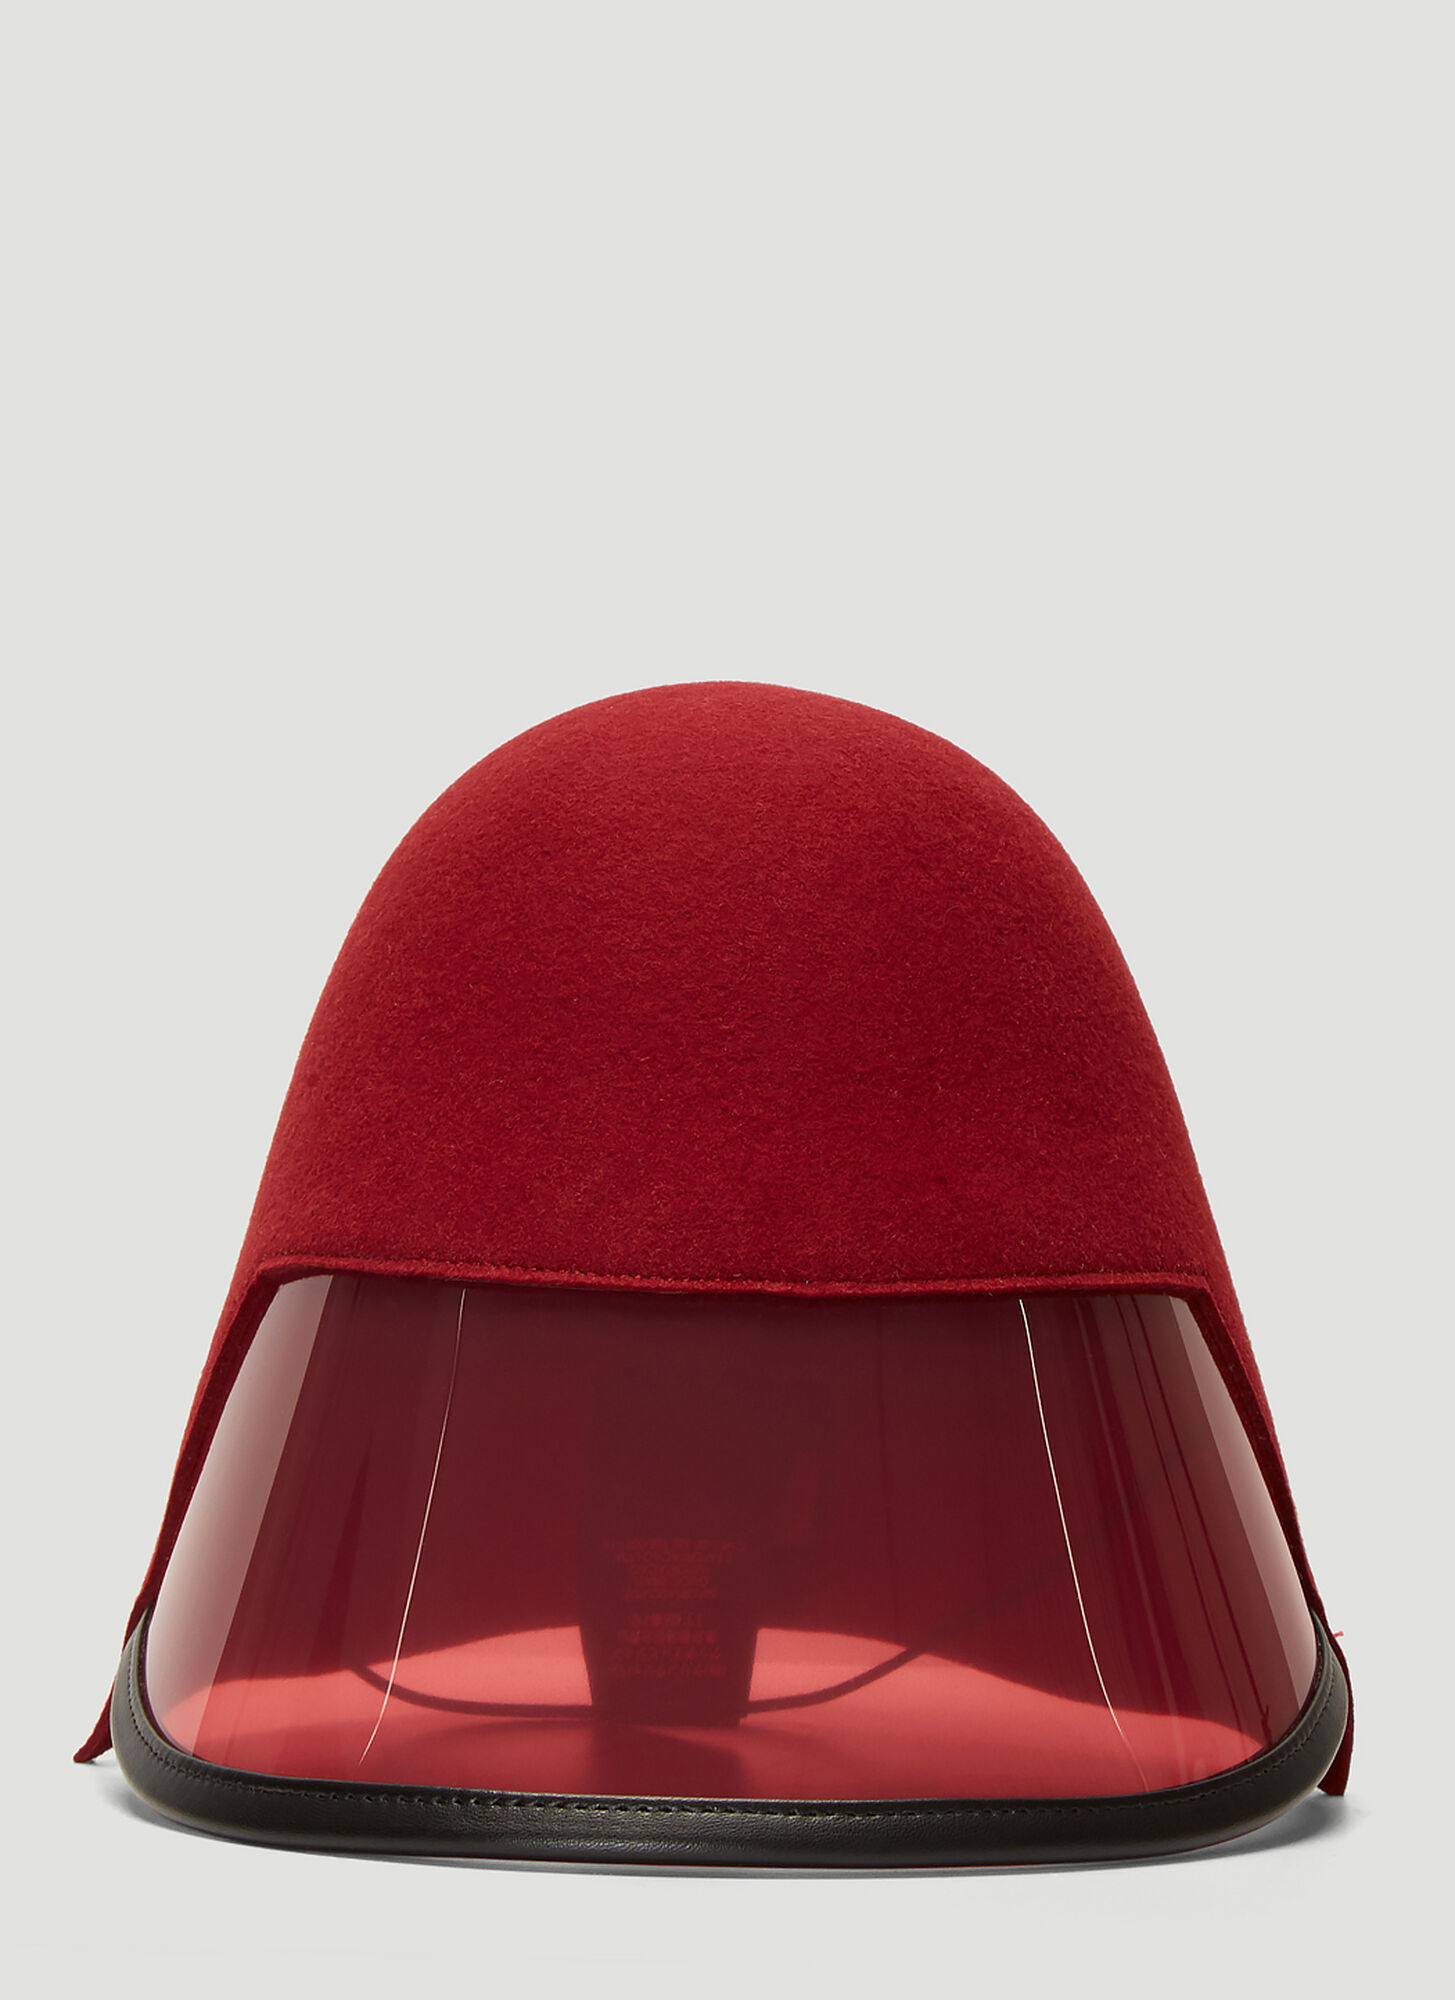 Gucci Transparent Panel Visor Hat in Red